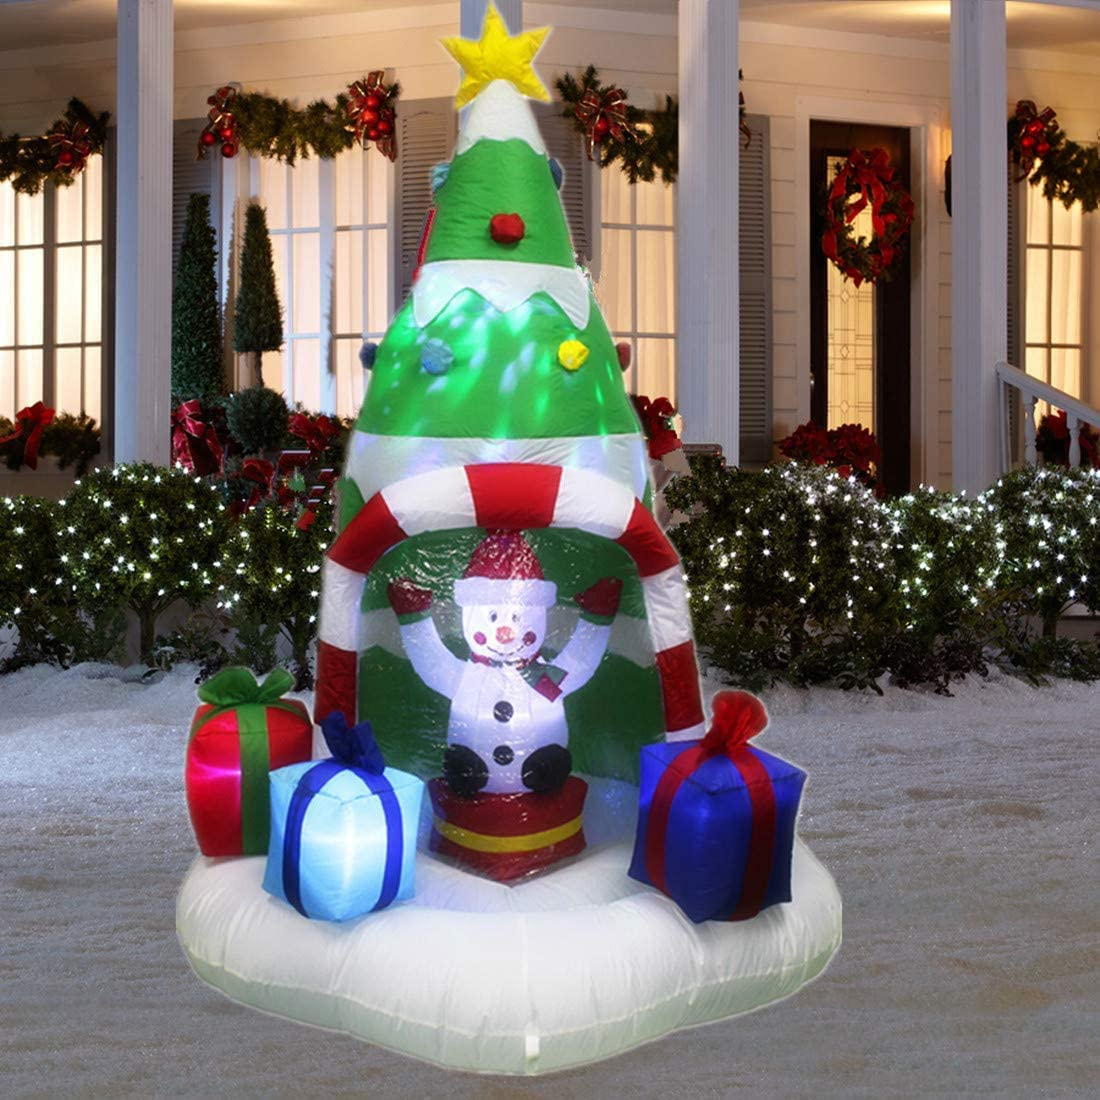 ANOTHERME 7 Feet Christmas Inflatable Tree with Rotating Snowmen and Twinkle Lights Decor, Outdoor Indoor Holiday Yard Decoration, Air Blown LED Lighted